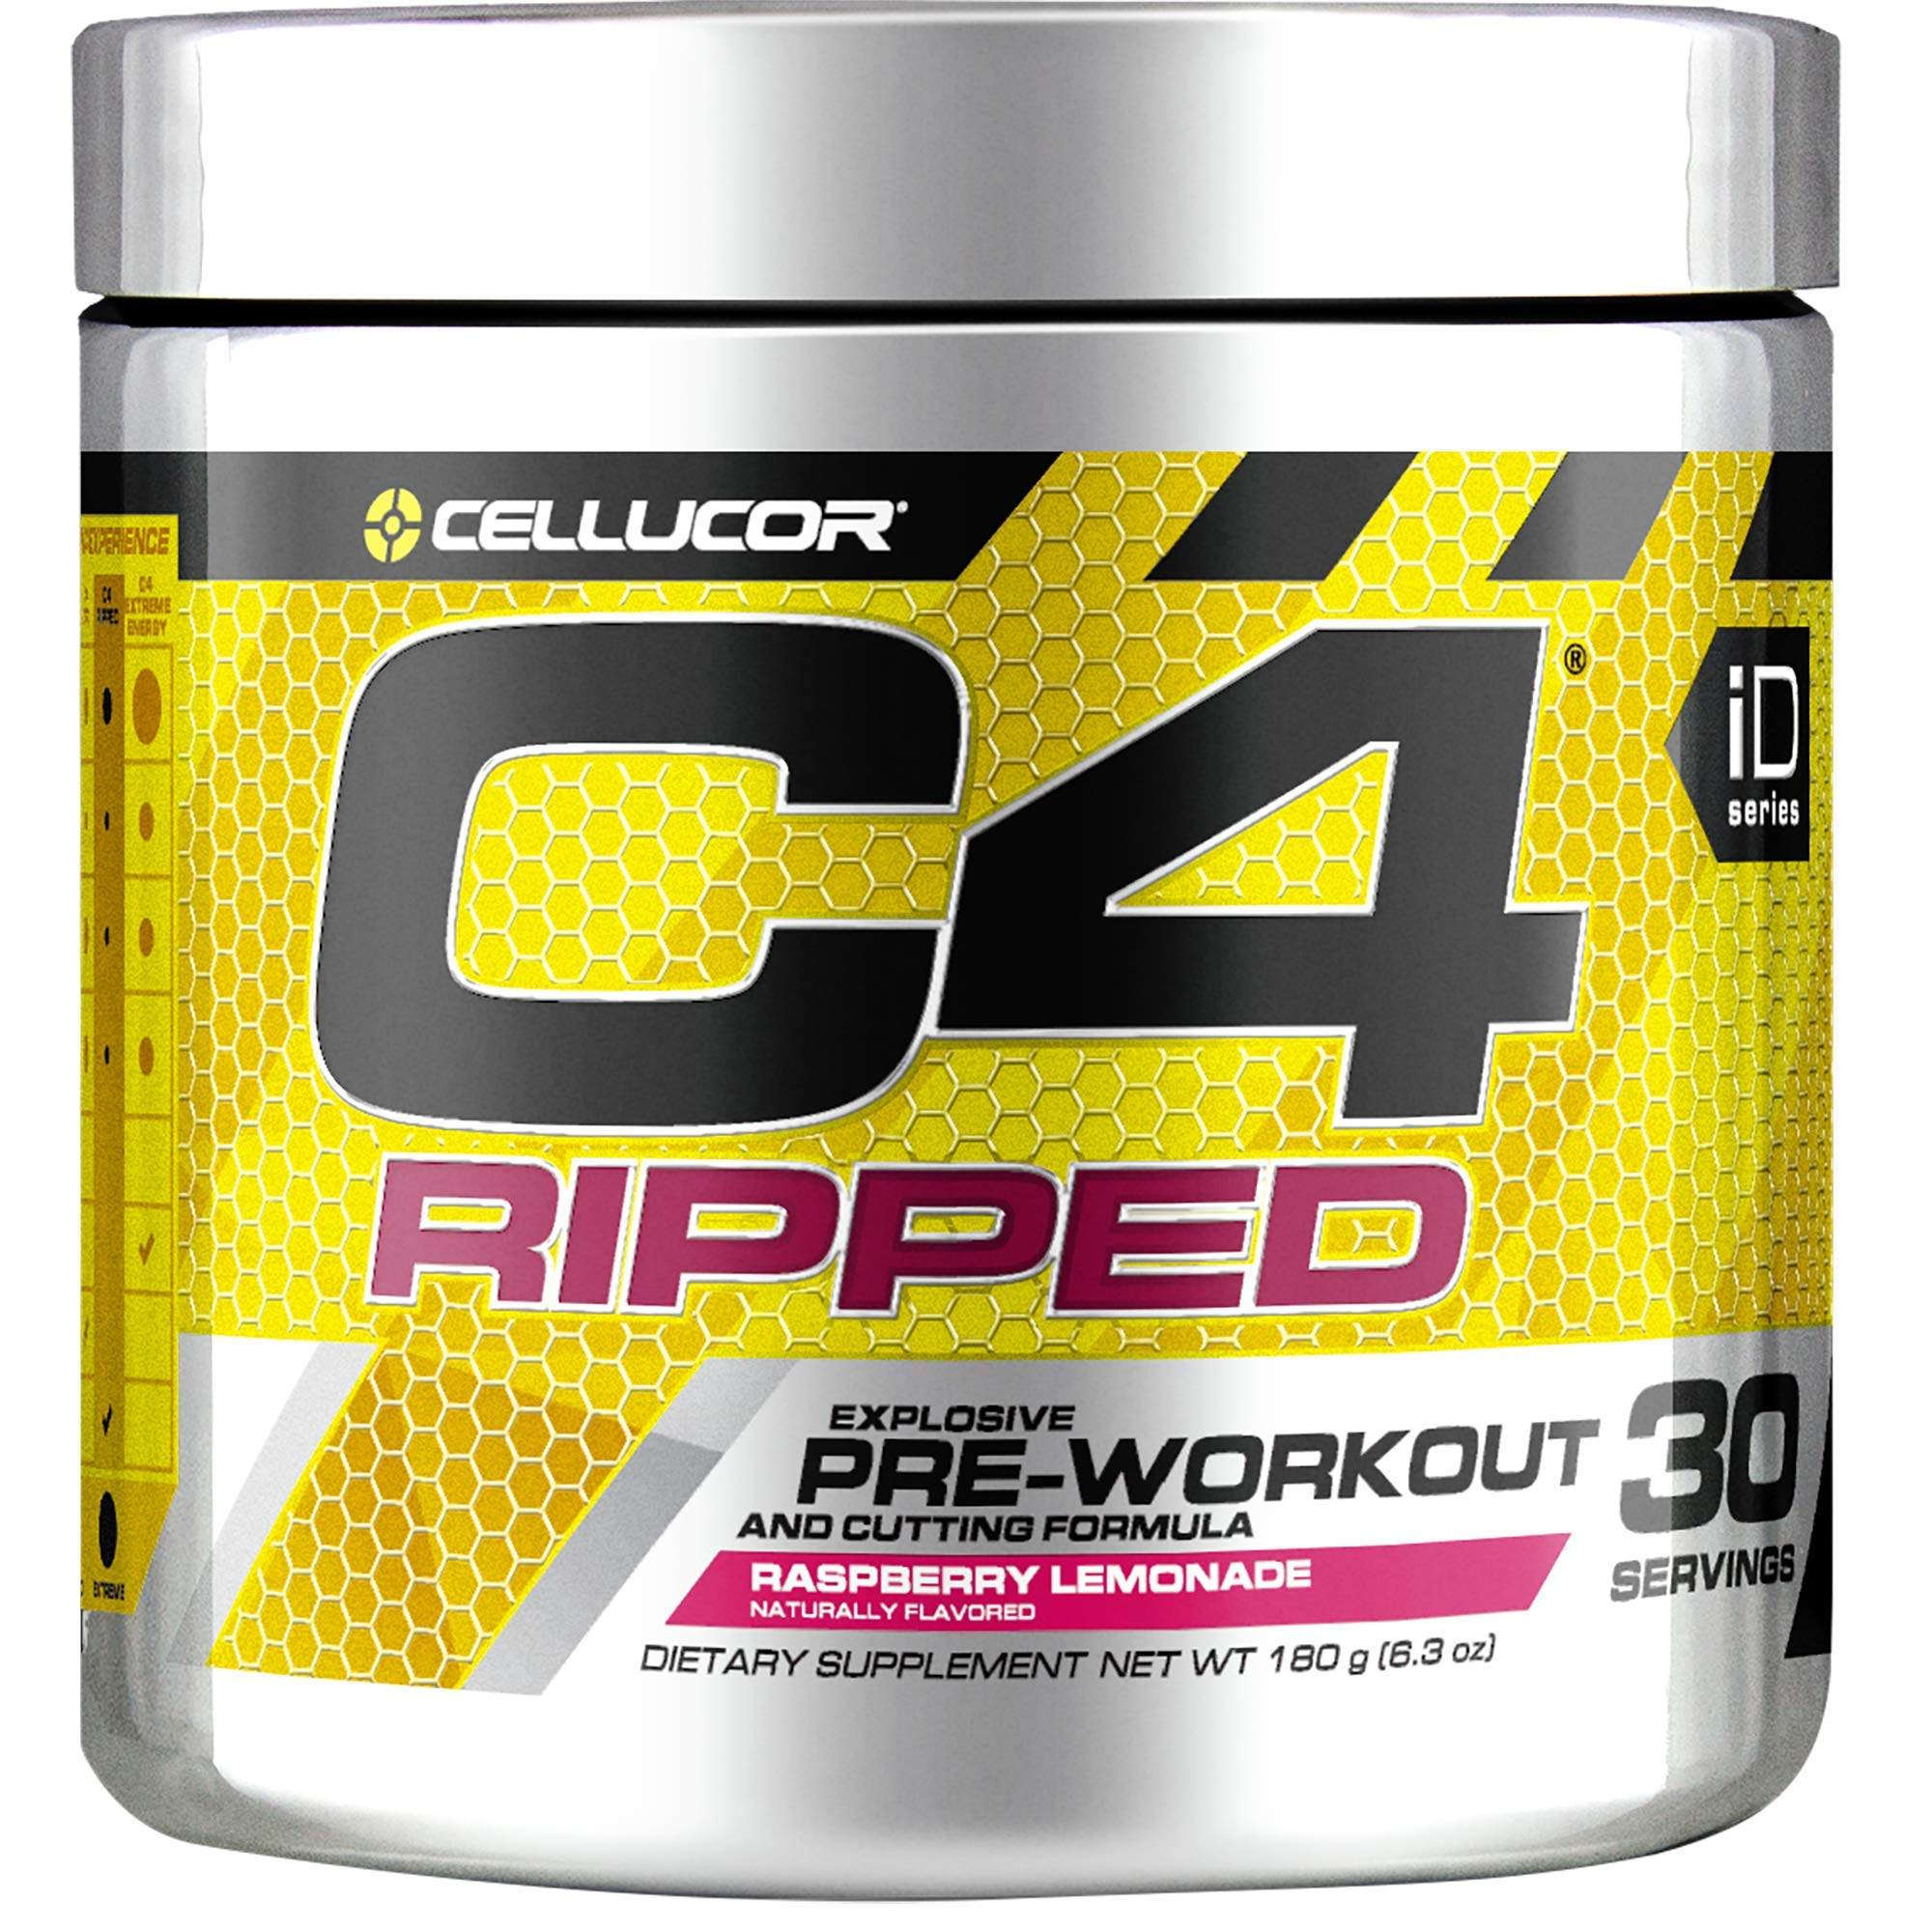 CELLUCOR C4 Ripped Pre Workout, Raspberry Lemonade, 30 Servings - Preworkout Powder for Men & Women With Green Coffee Bean Extract & L Carnitine